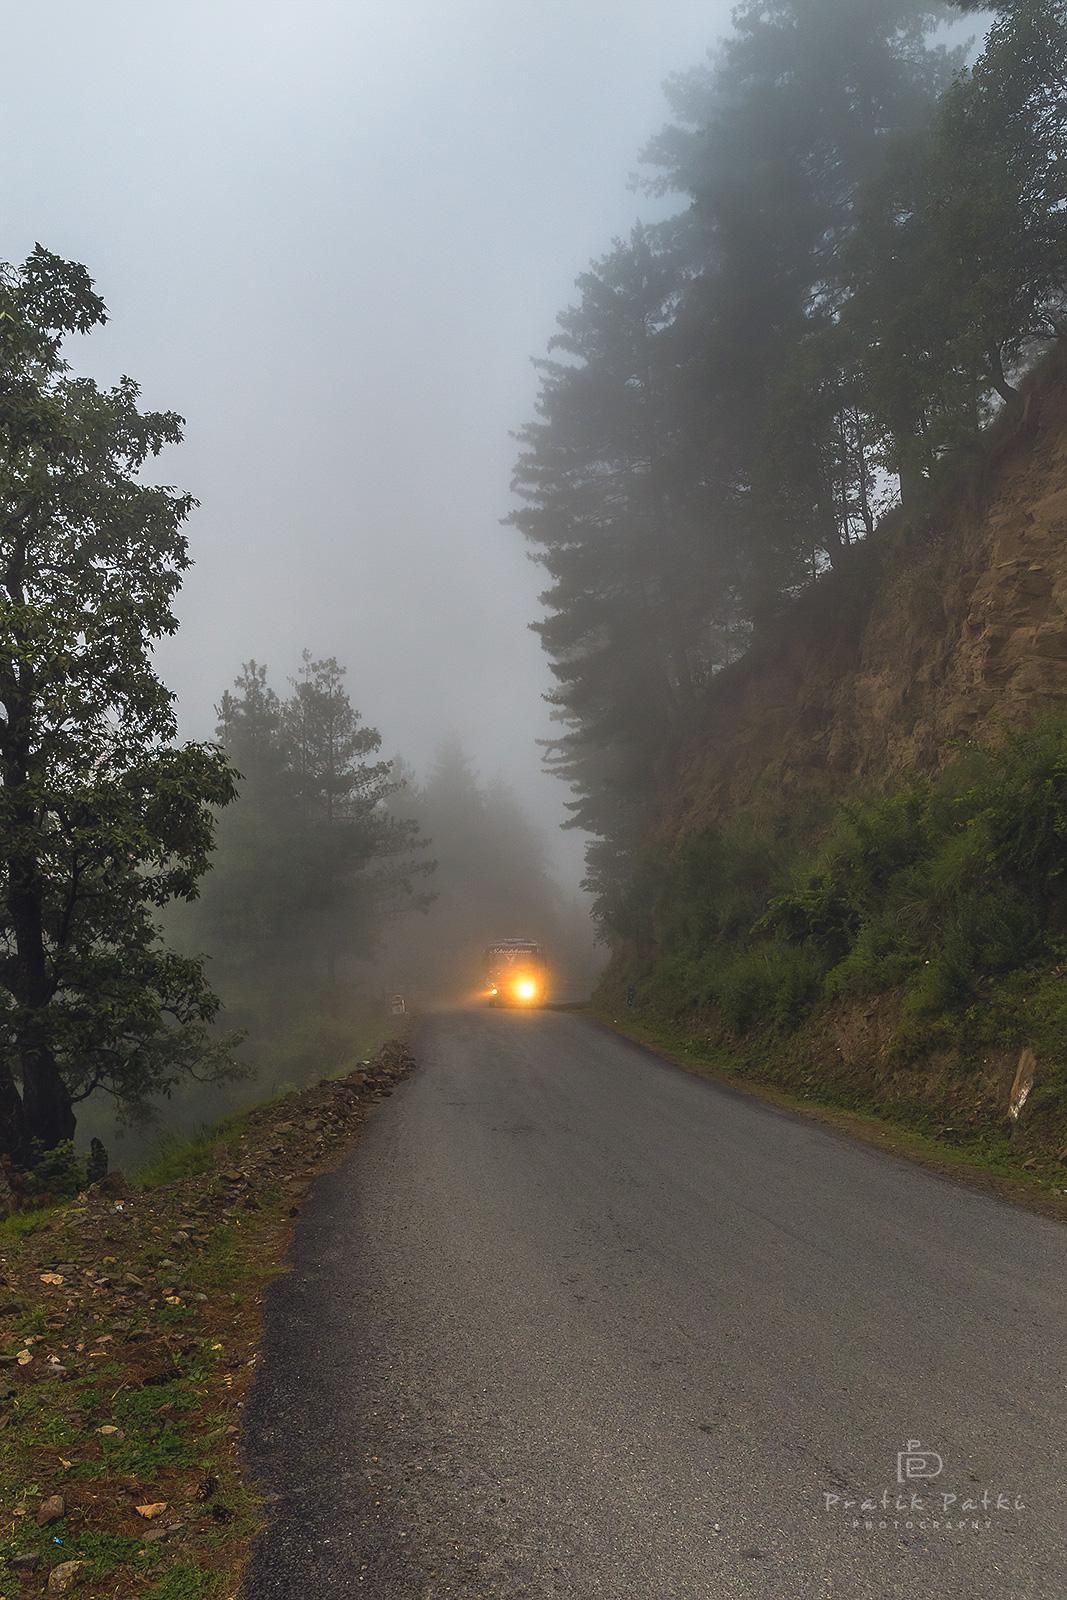 A glimpse of what the entire road looked like early morning. It was one of the best downhills ever. Great tarmac, sparse traffic, cold mist and dense woods.